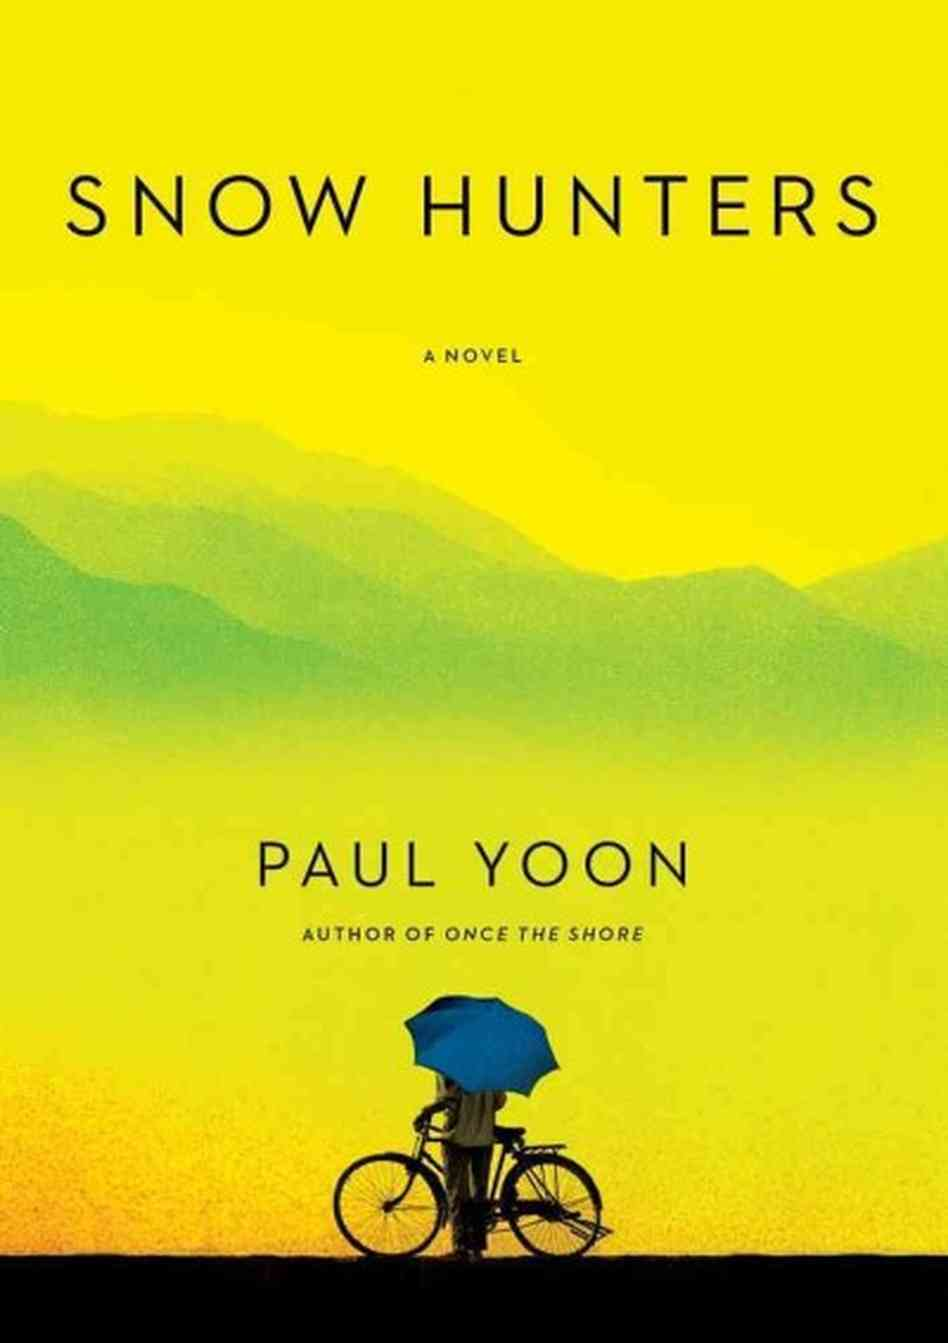 http://discover.halifaxpubliclibraries.ca/?q=title:snow hunters author:yoon